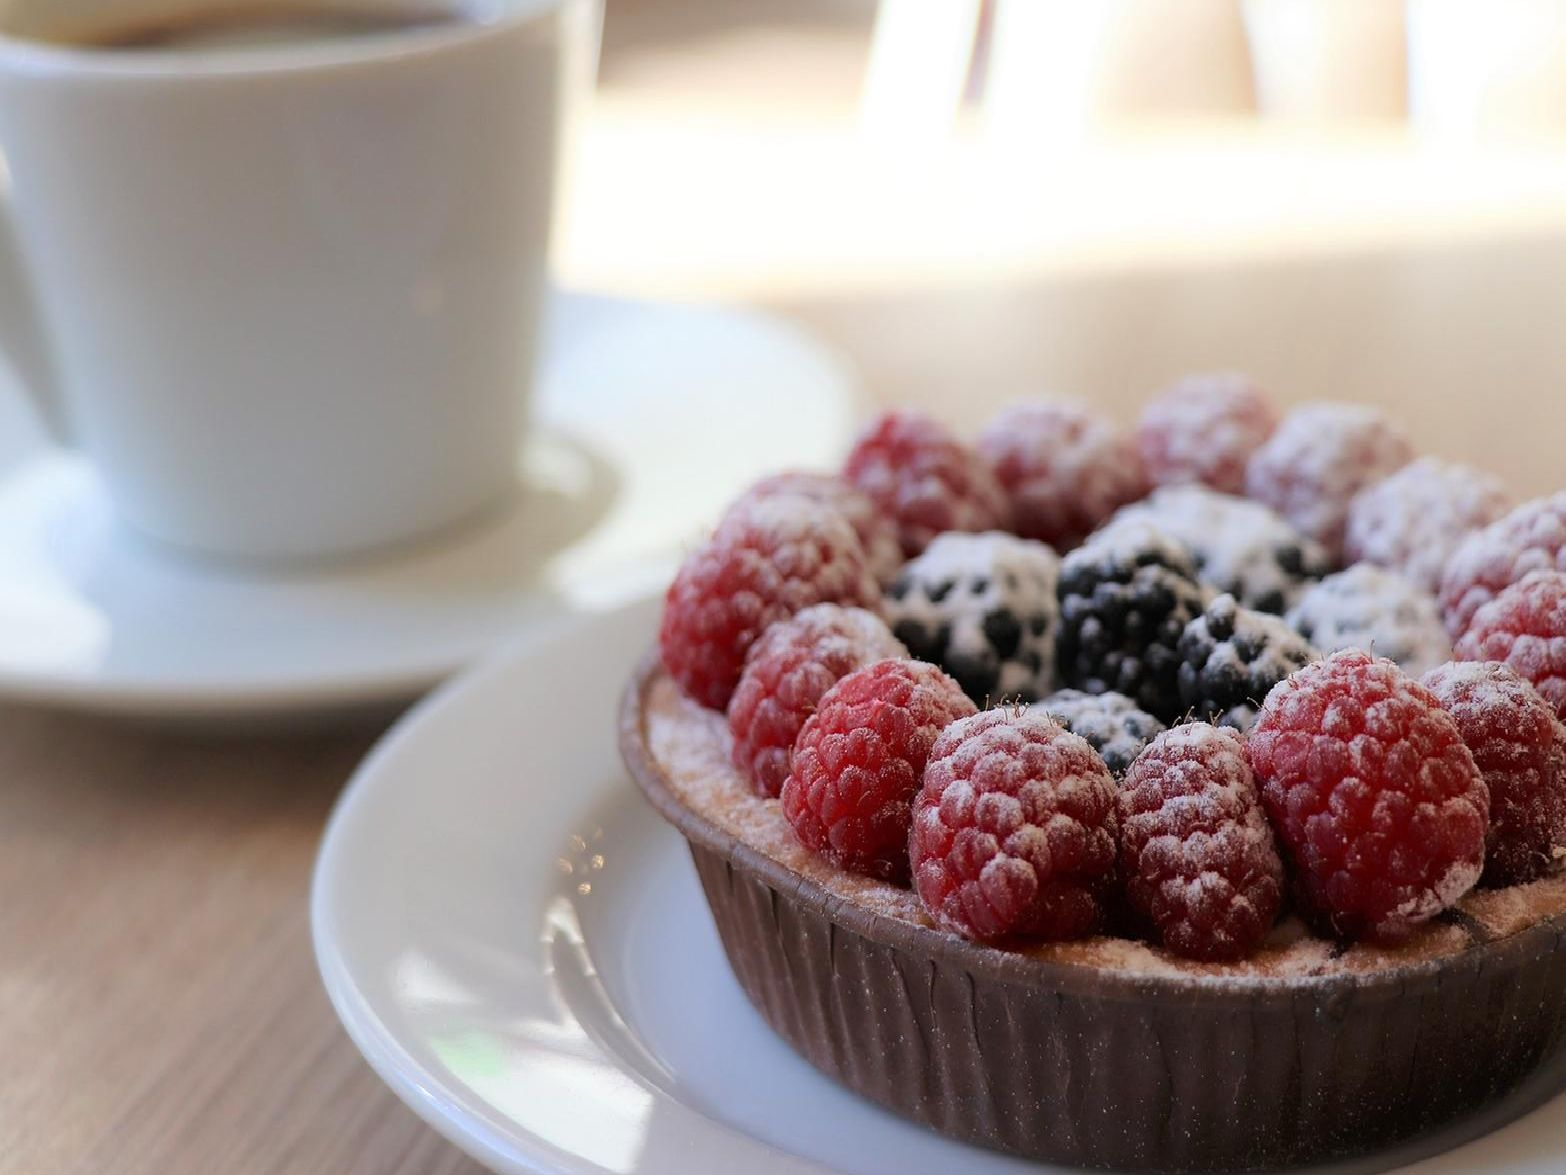 Grab coffee and a cake at one of Derbyshire's finest cafes.